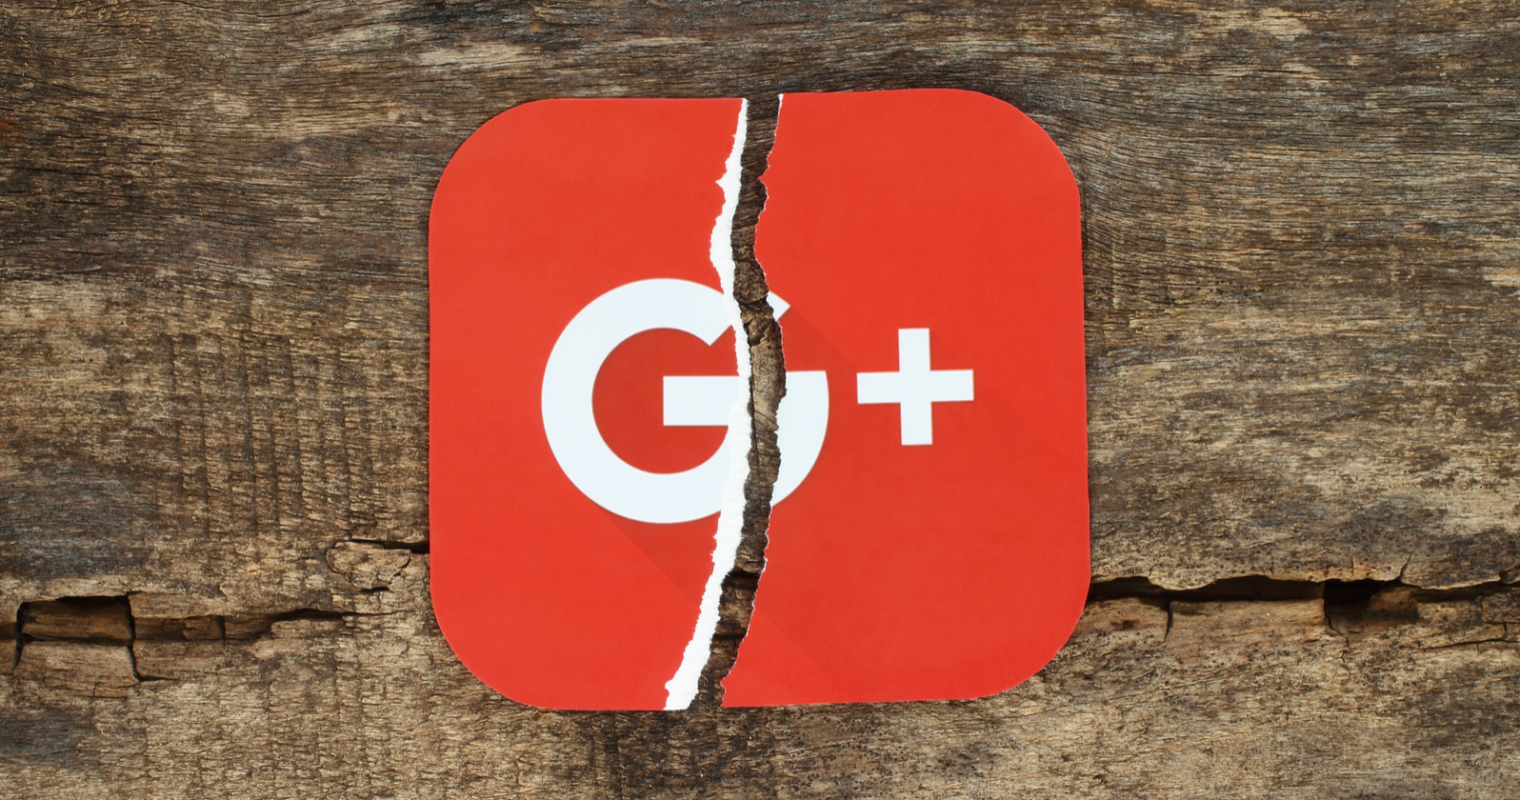 Google+ is Officially Shutting Down on April 2nd